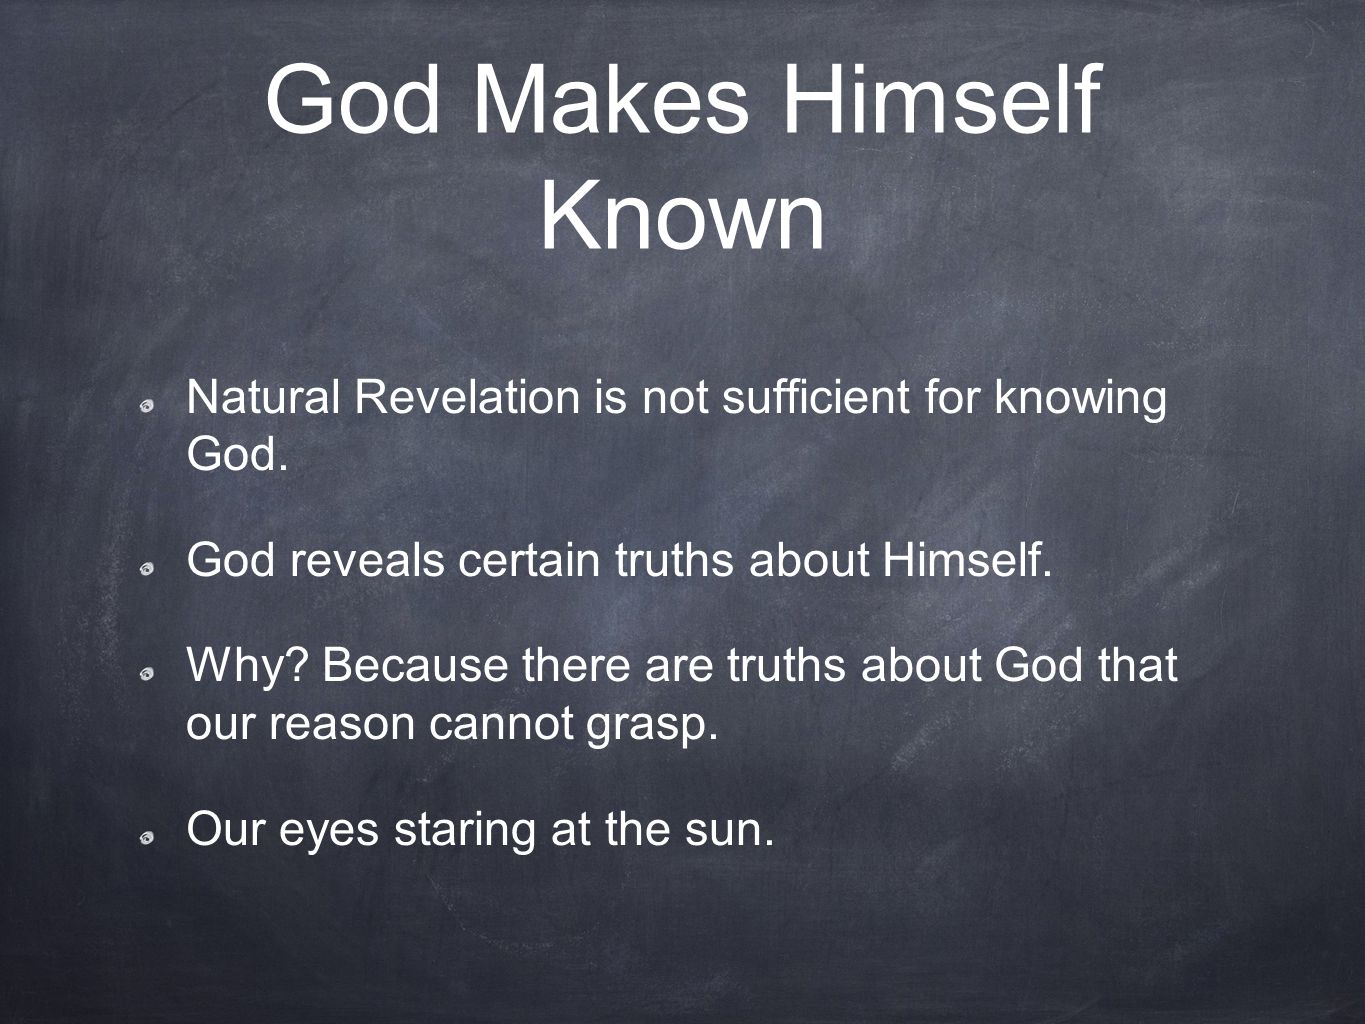 God Makes Himself Known